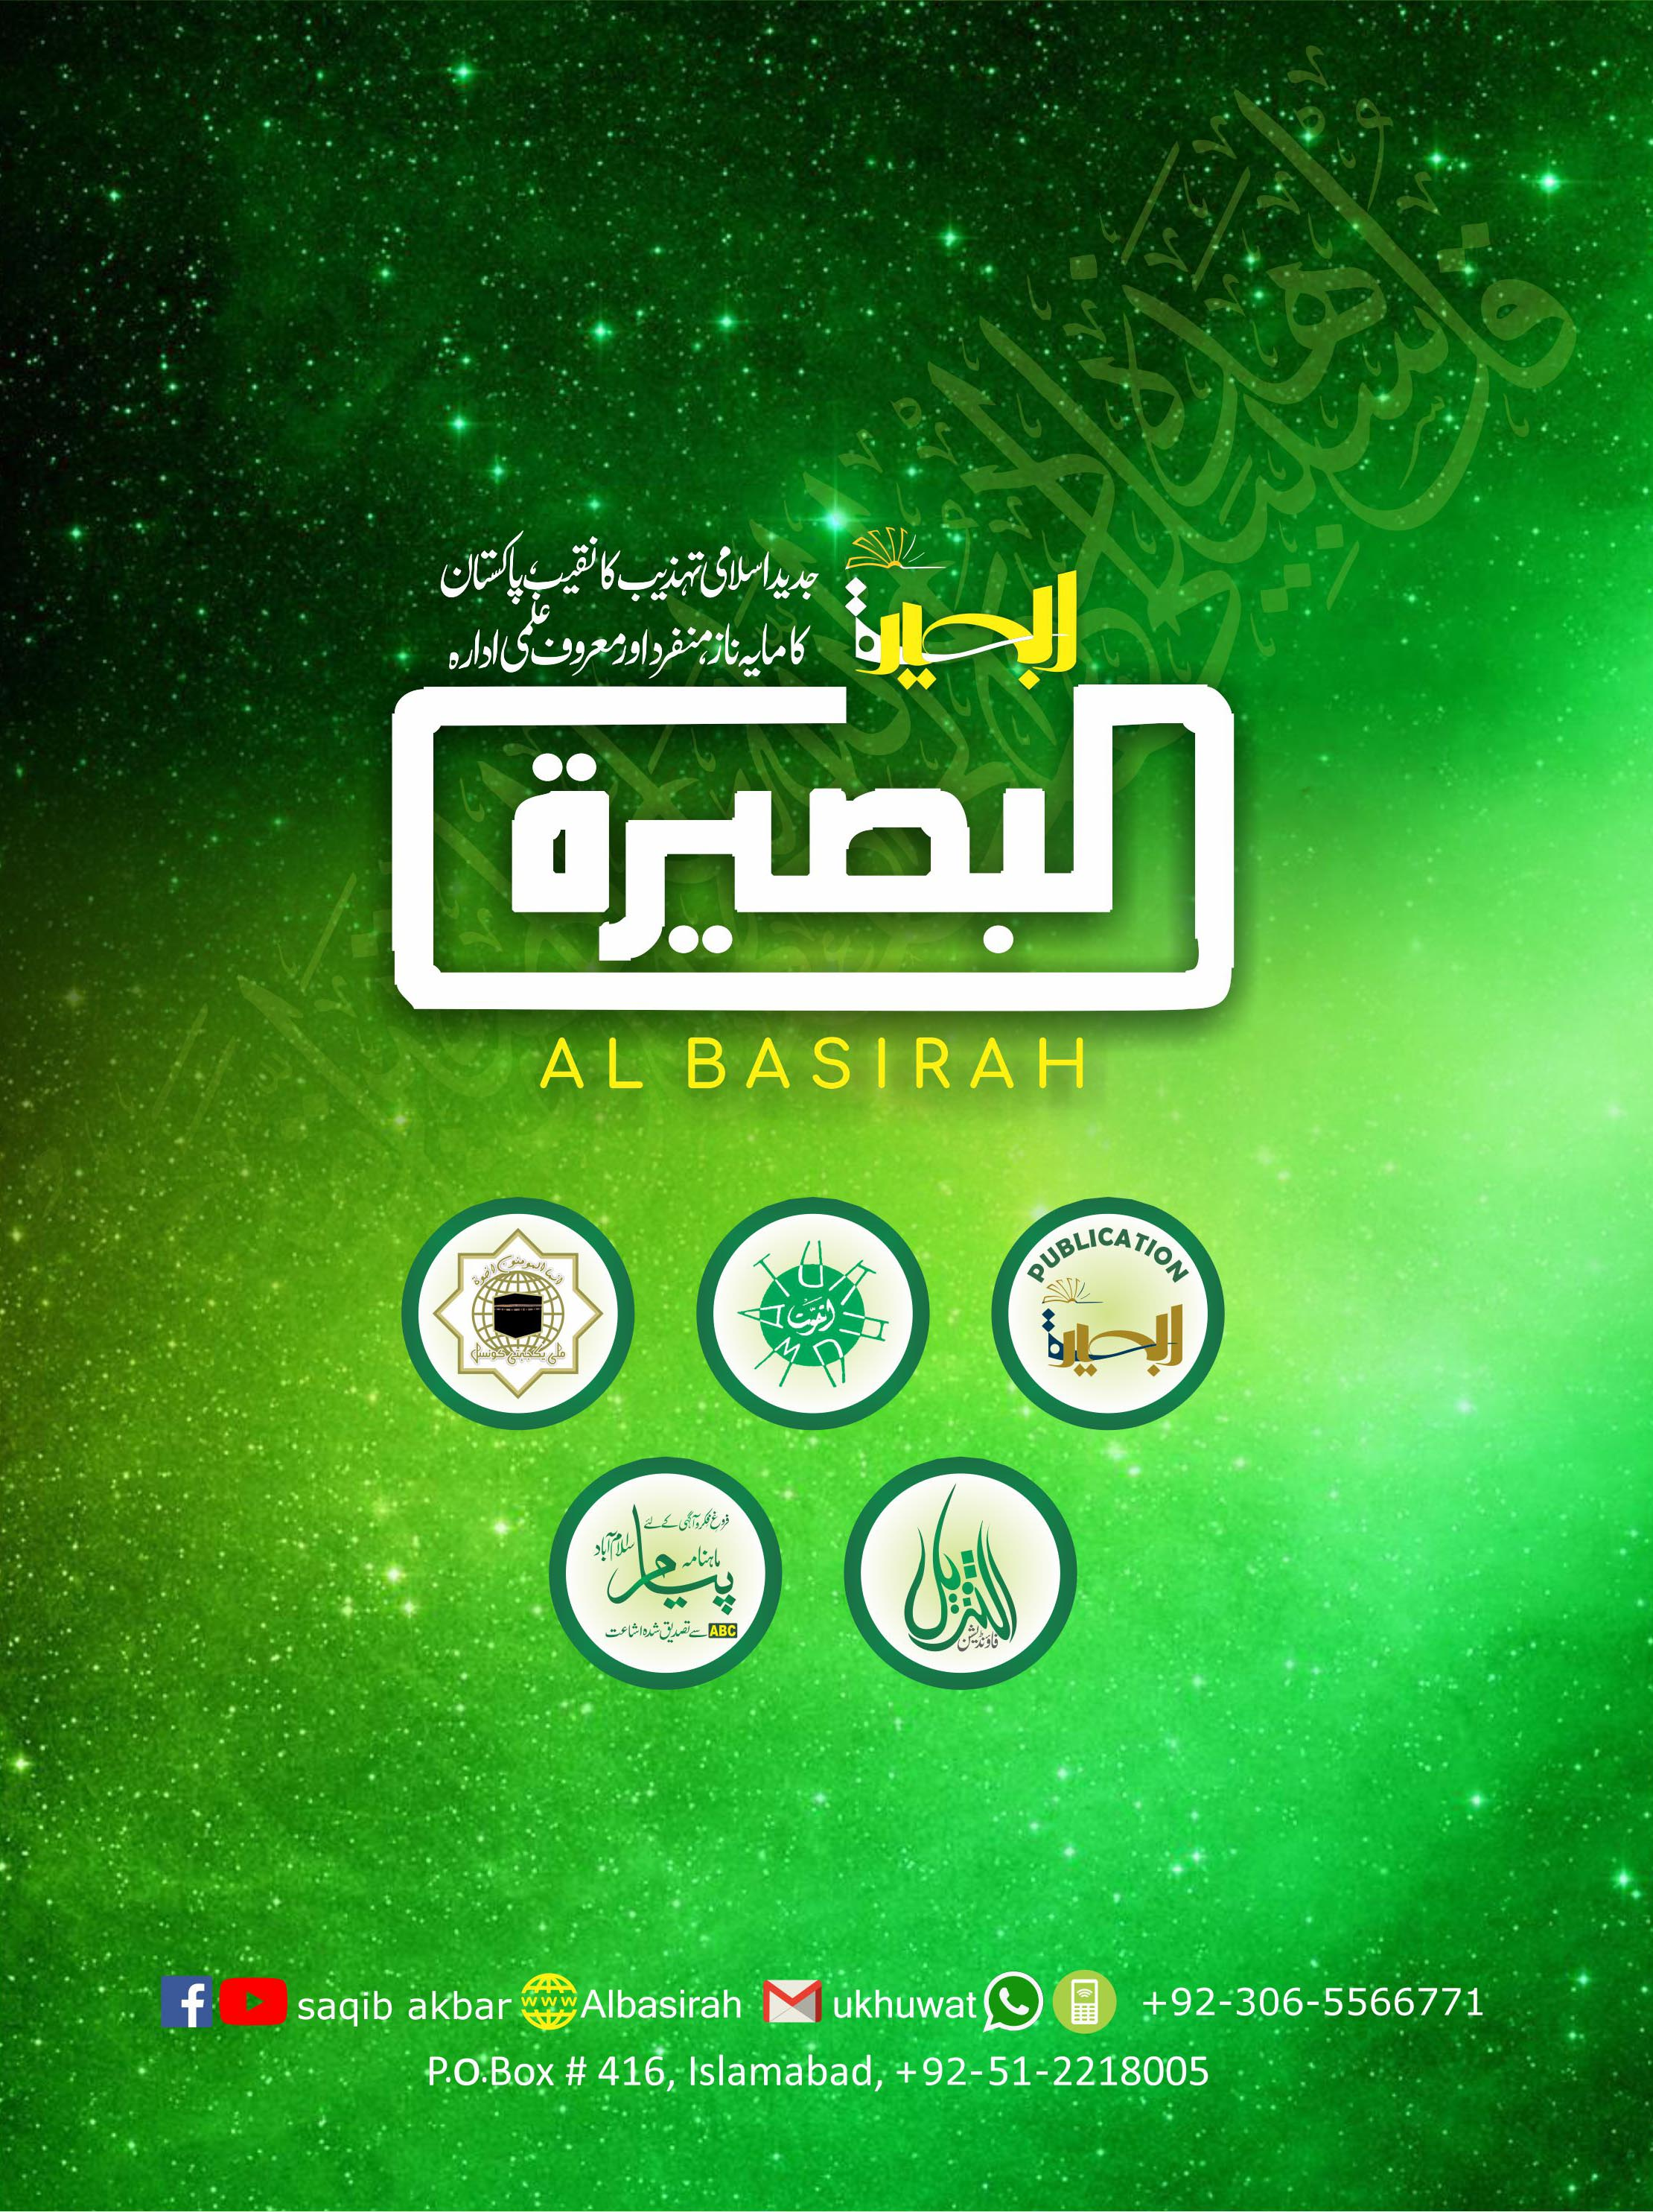 About Albasirah Trust